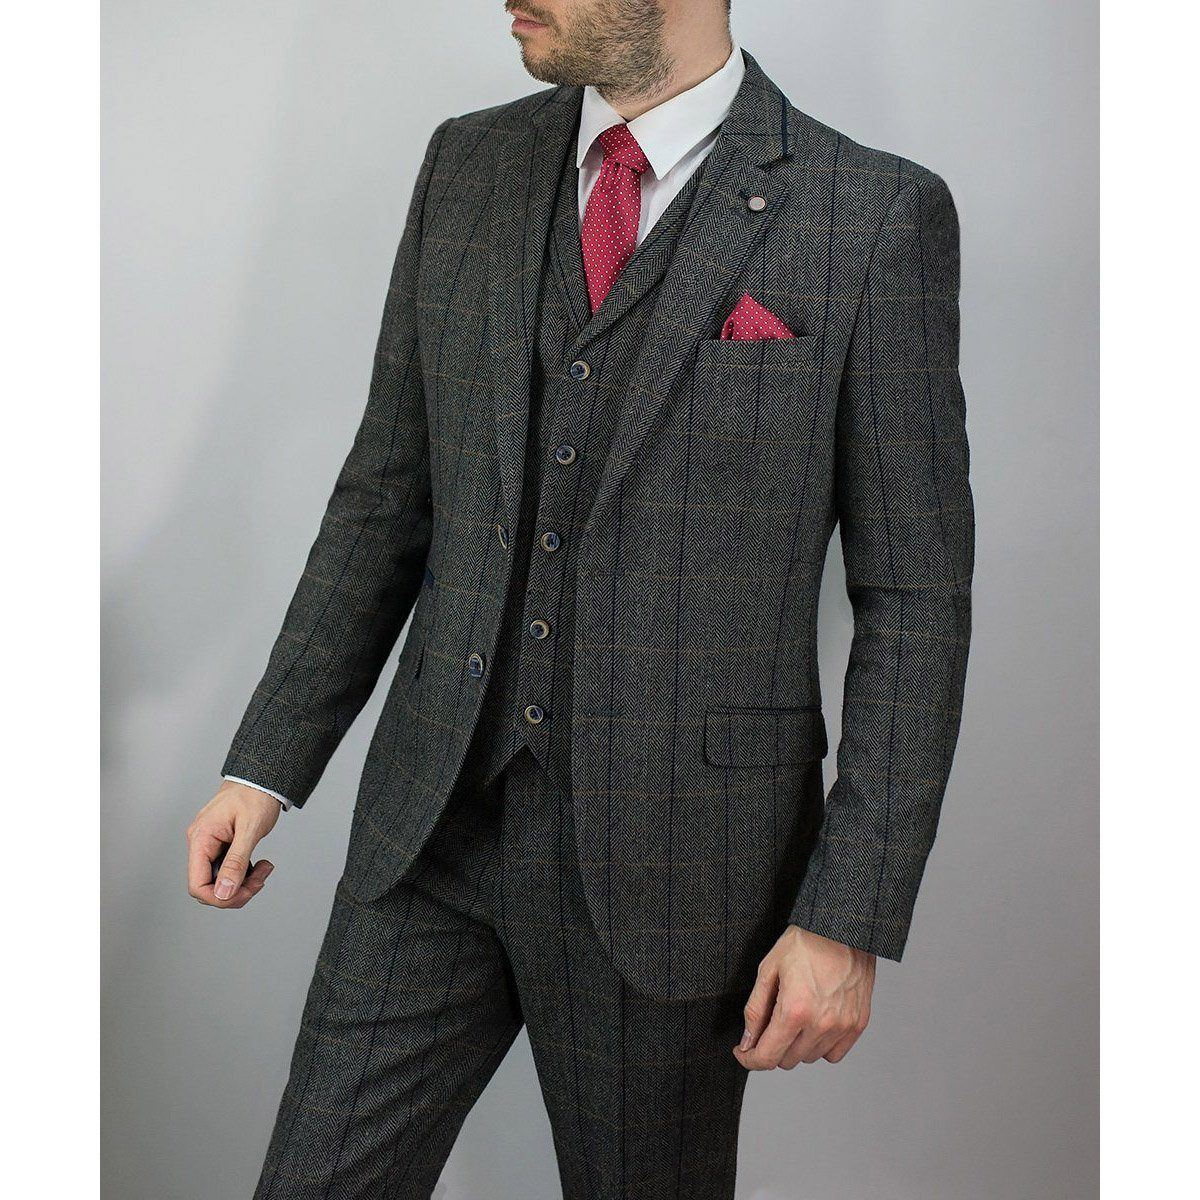 Grey Tweed Jacket - Leonard Silver